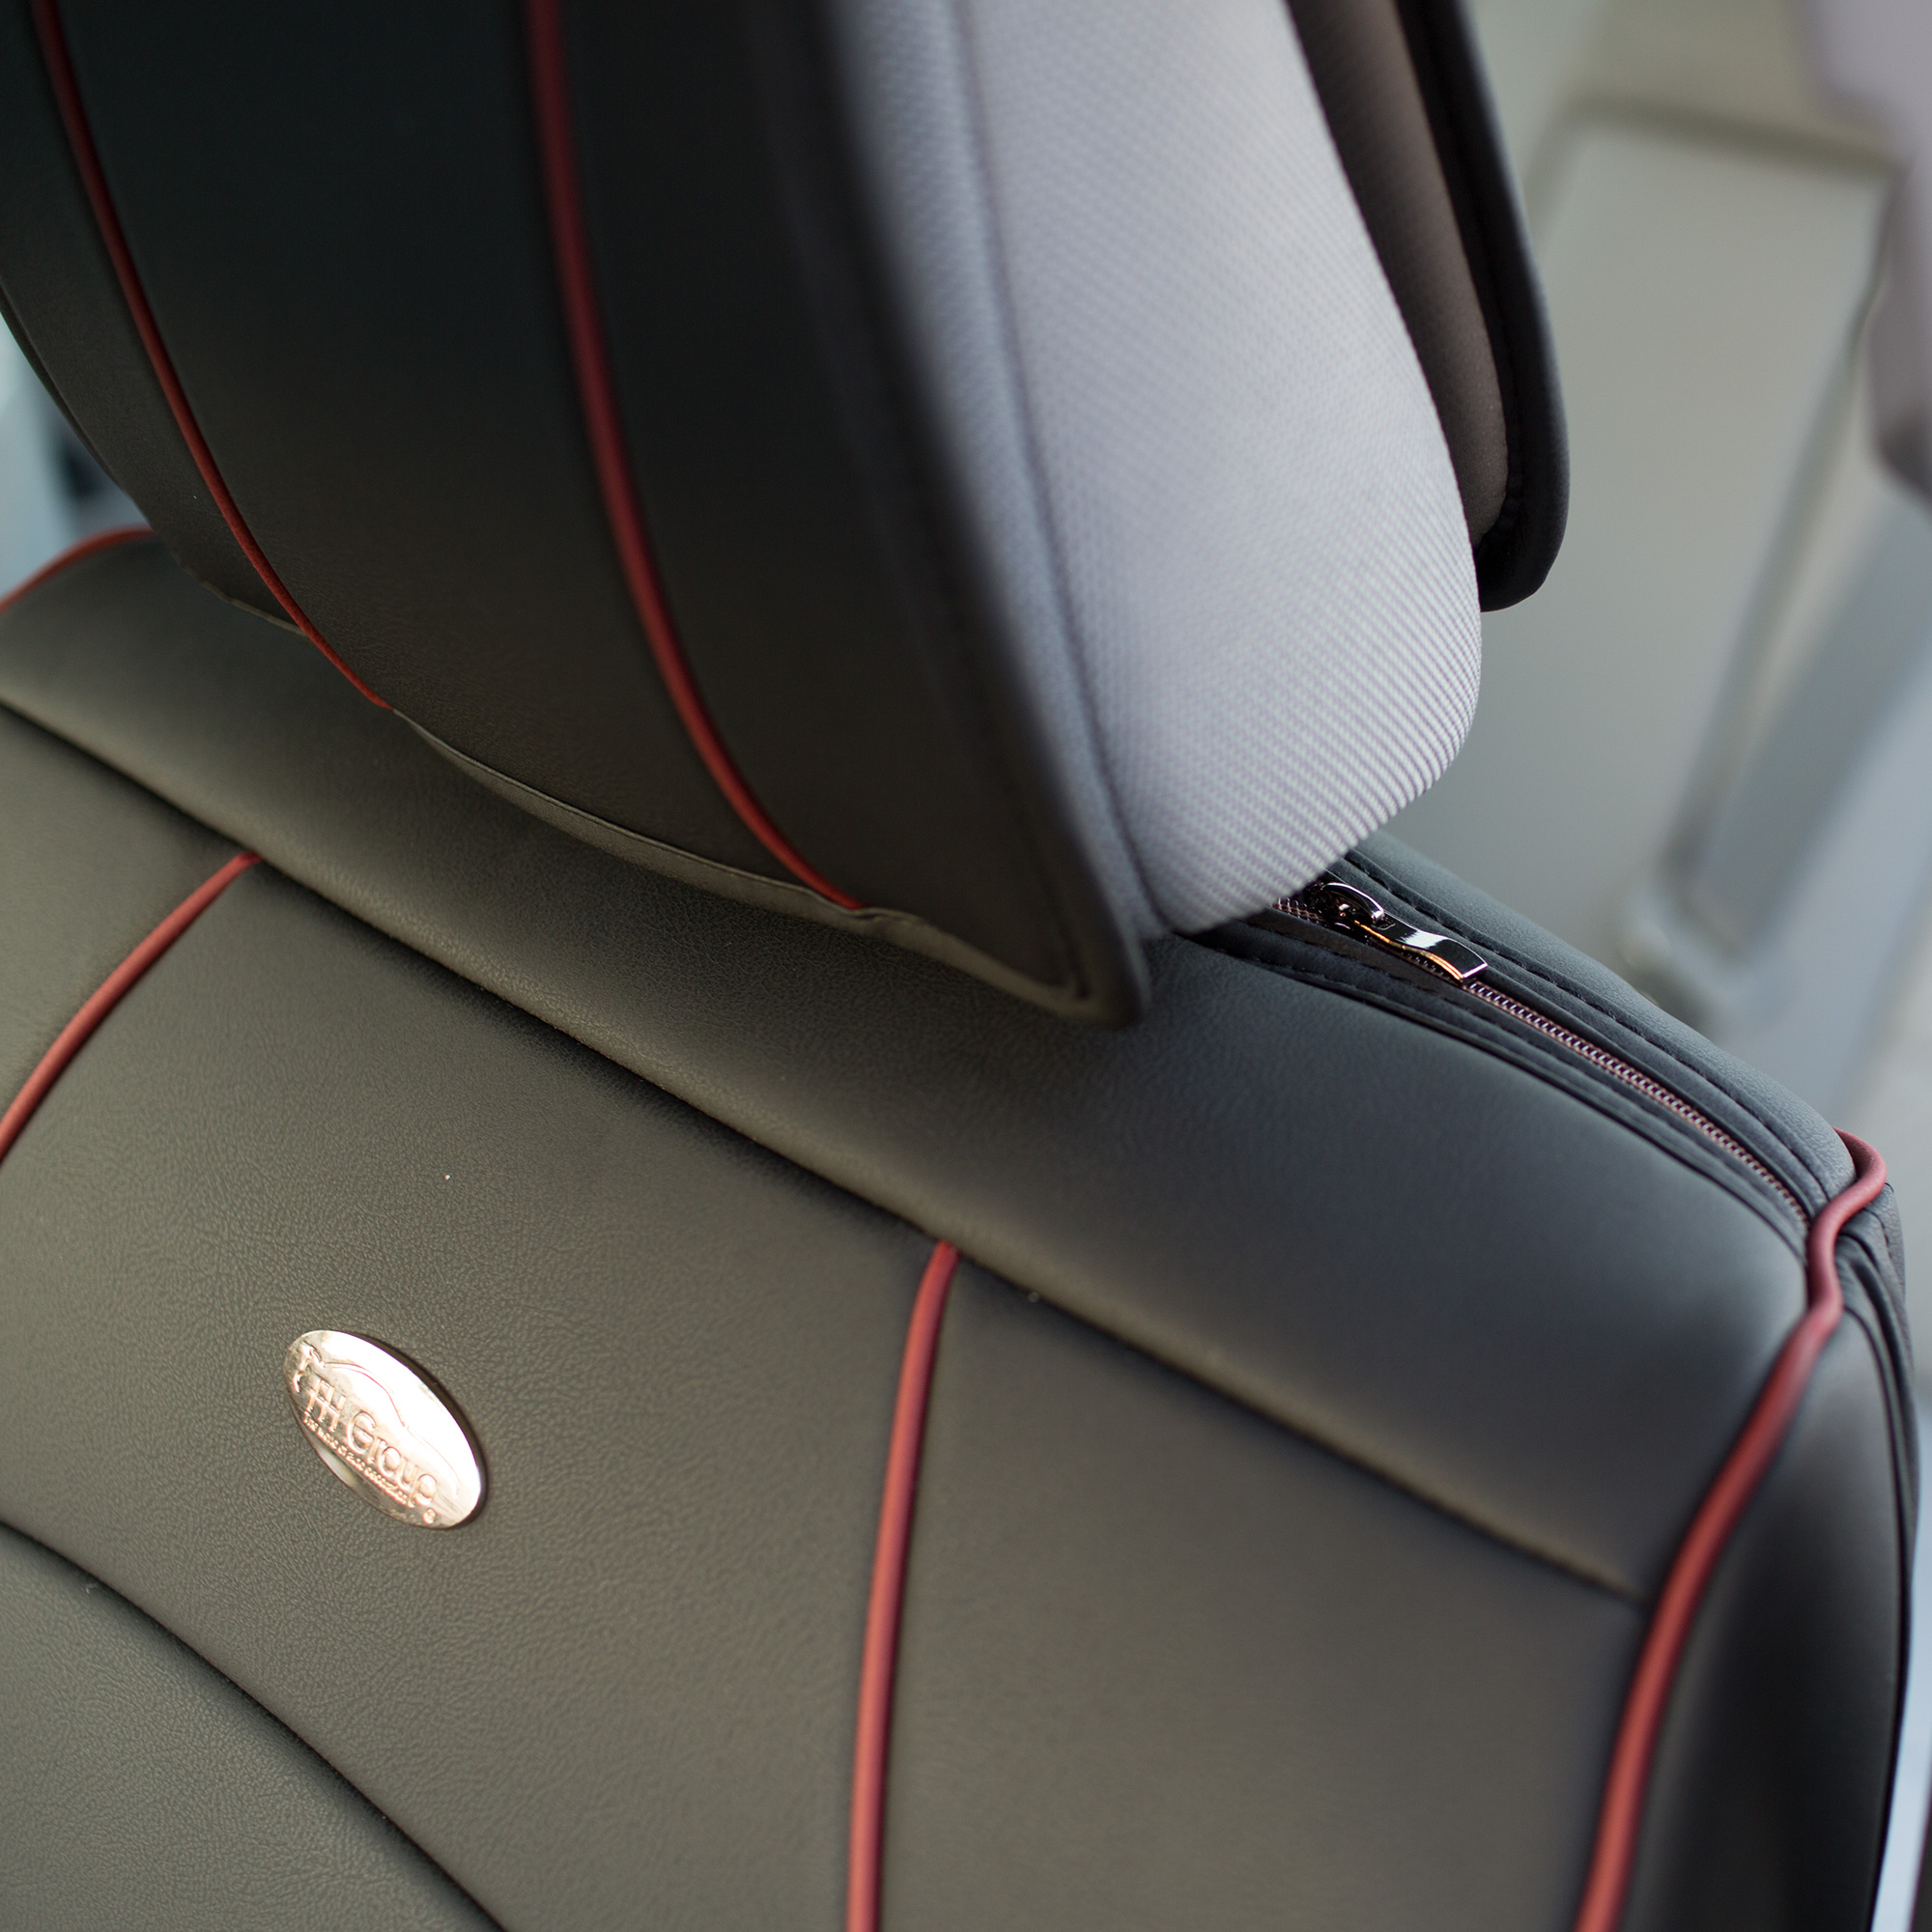 Luxury-Leather-Seat-Cushion-Covers-Front-Bucket-Pair-11-Color-Options thumbnail 14